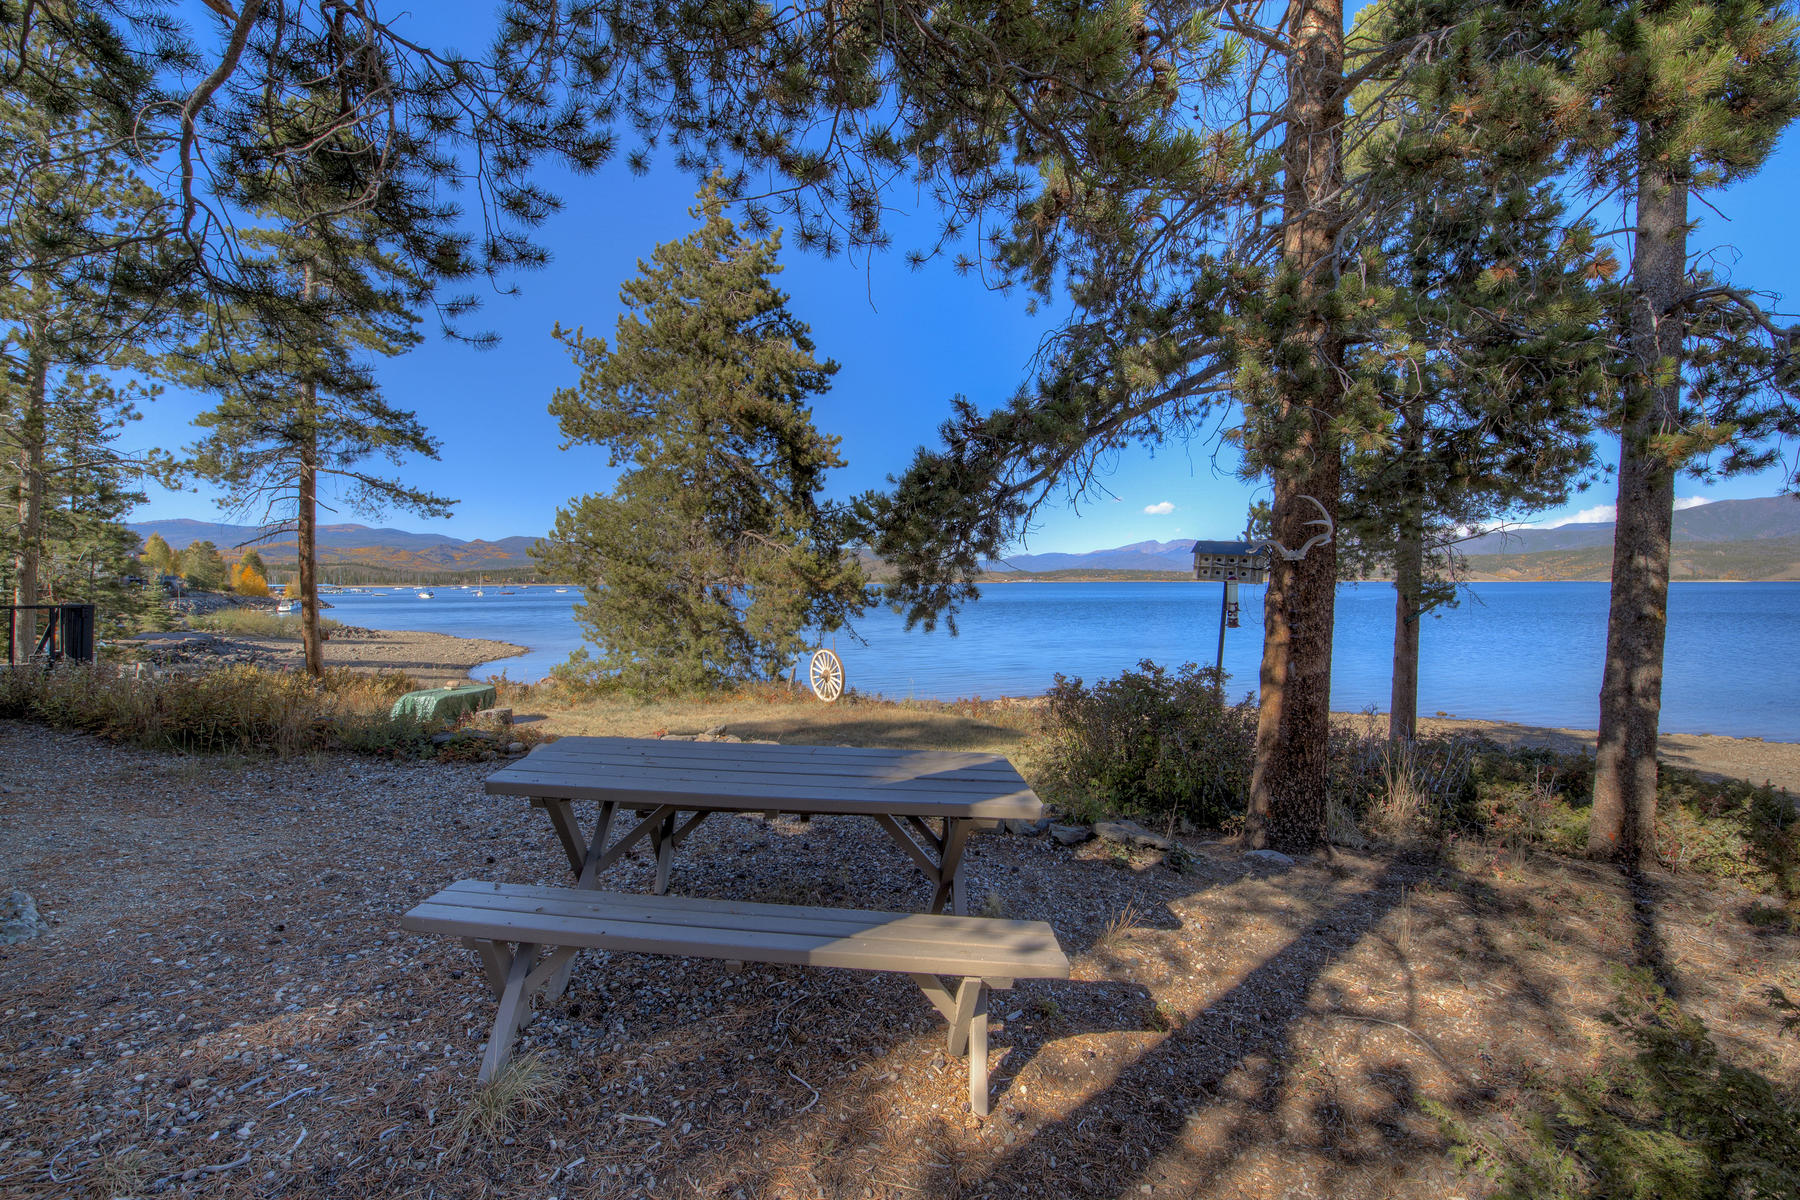 Single Family Homes for Active at Cabin on the Lake 30 GCR 6124 Granby, Colorado 80446 United States